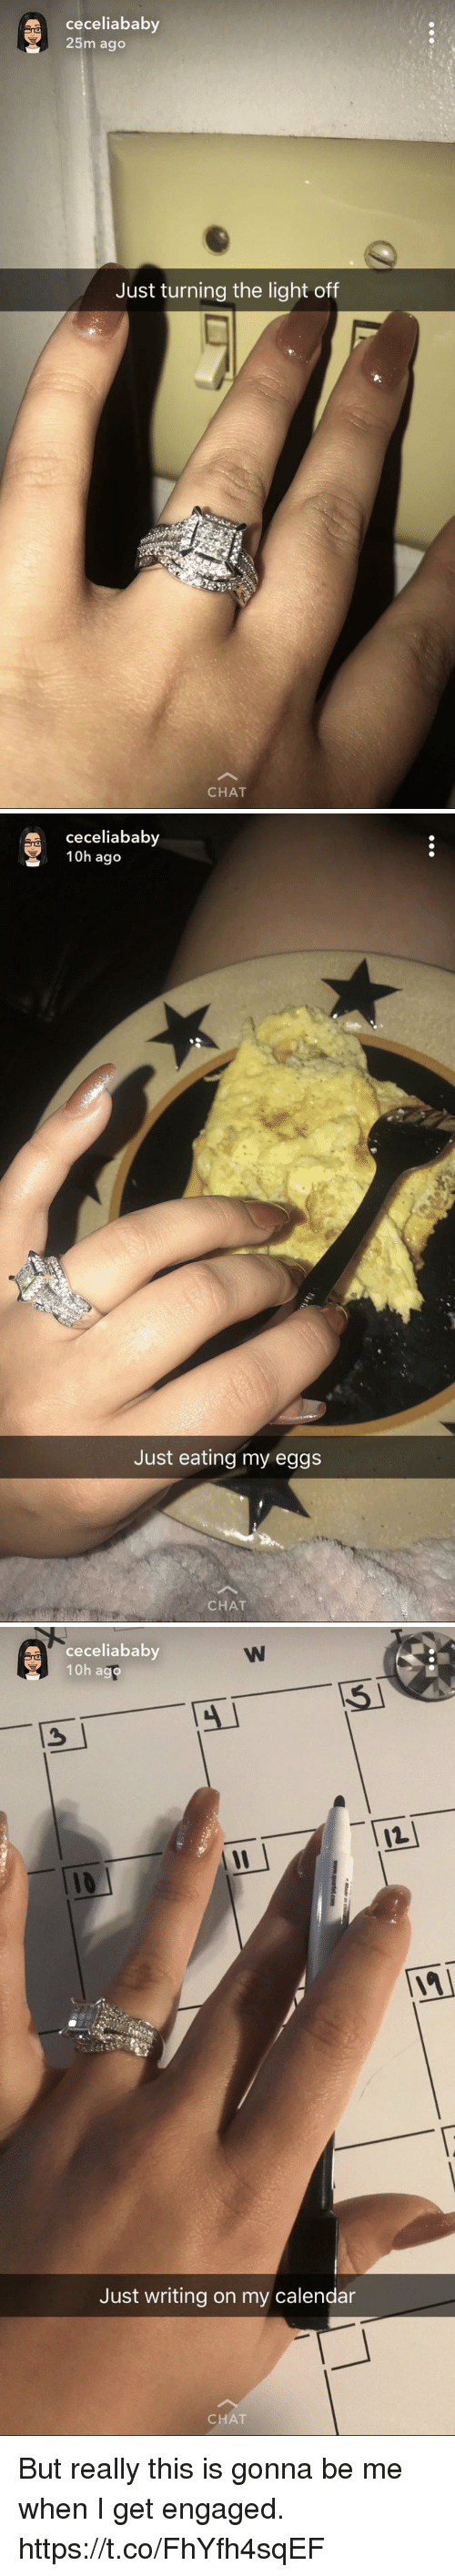 Calendar, Chat, and Girl Memes: ceceliababy  25m ago  Just turning the light off  CHAT   ceceliababy  10h ago  Just eating my eggs  CHAT   ceceliababy  10h a  Just writing on my calendar  CHAT But really this is gonna be me when I get engaged. https://t.co/FhYfh4sqEF